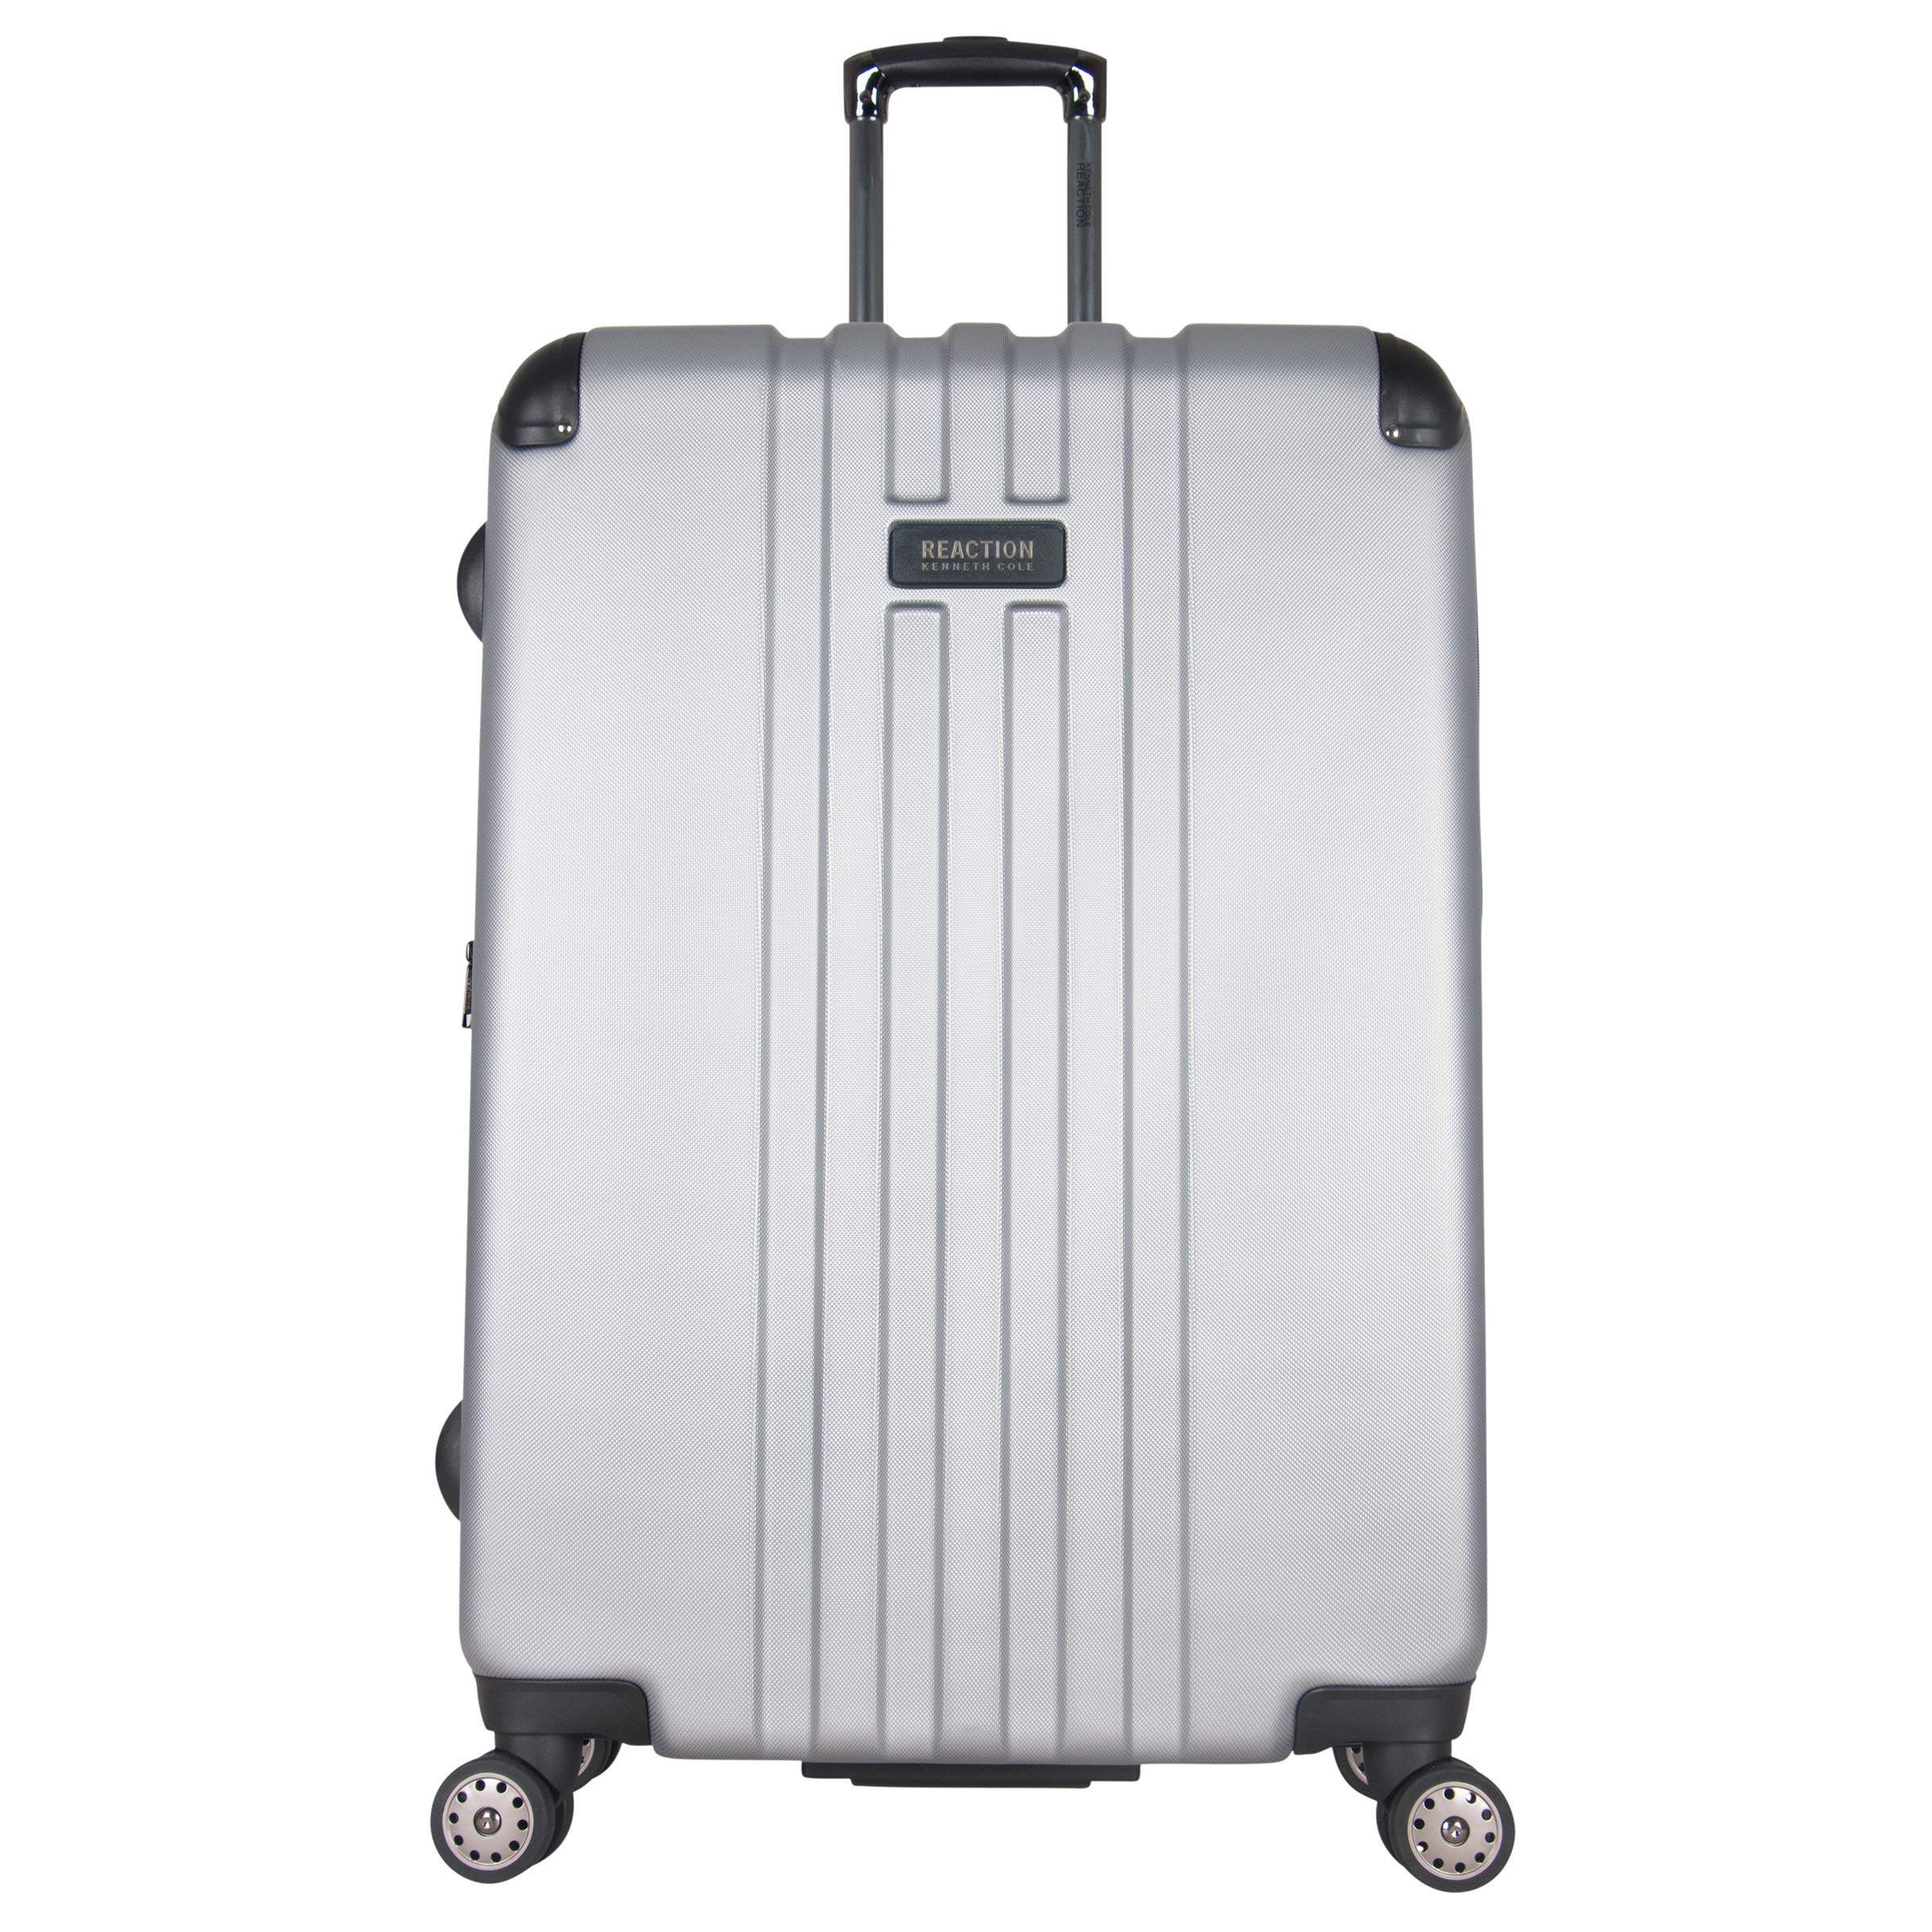 Kenneth Cole Reaction Reverb 29'' Hardside Expandable 8-Wheel Spinner Checked Luggage, Light Silver